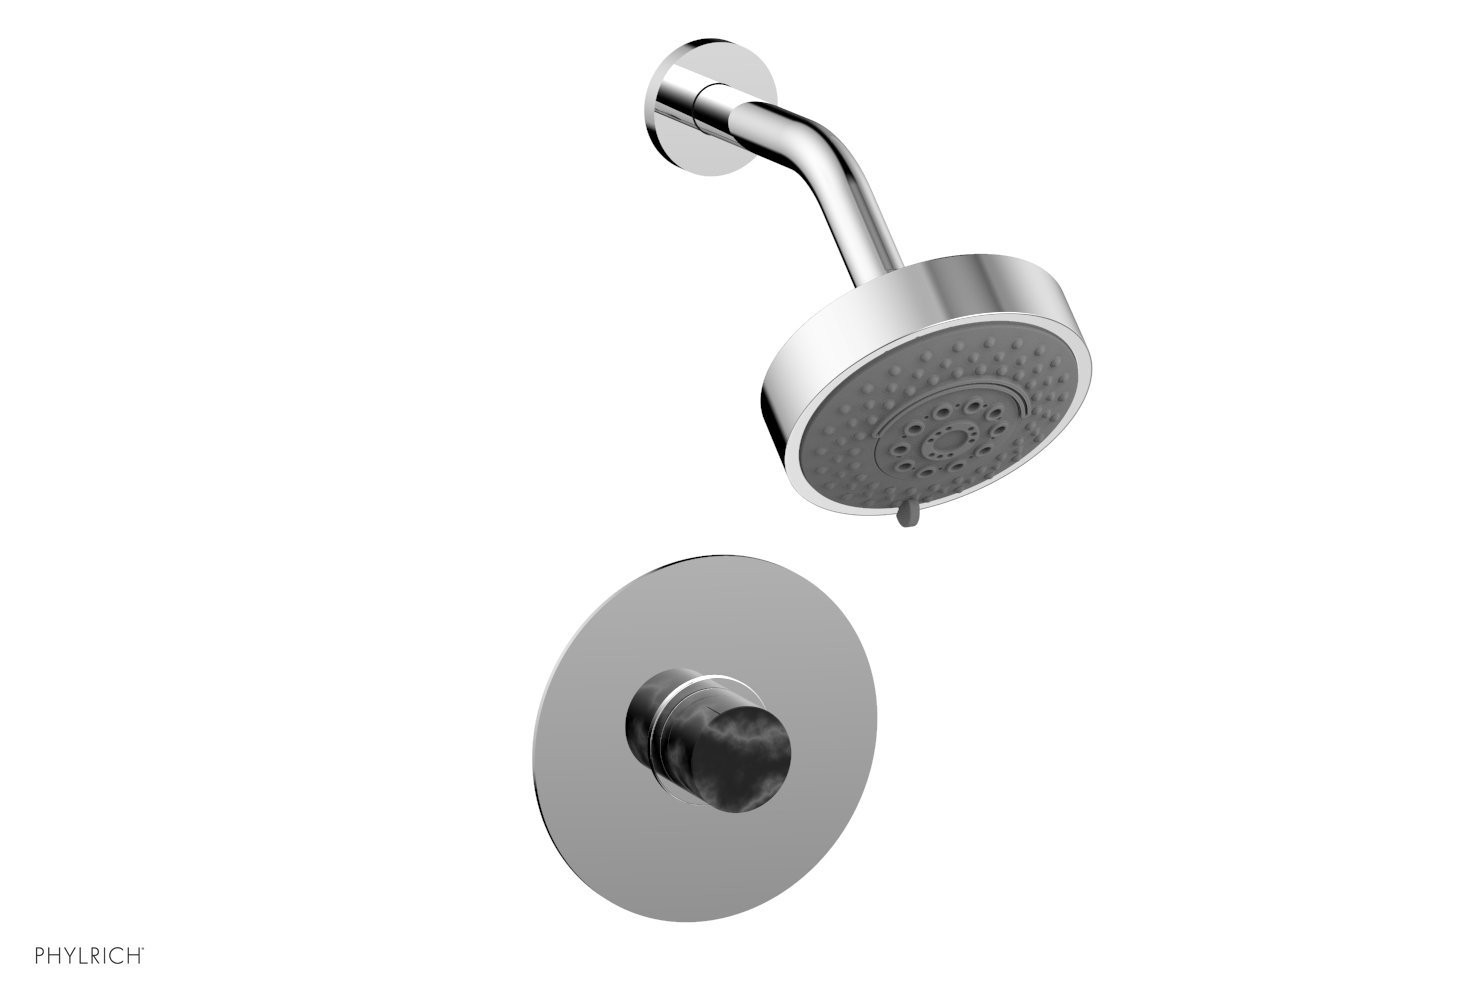 PHYLRICH 230-23-032 BASIC II WALL MOUNT PRESSURE BALANCE SHOWER SET WITH SOAP STONE KNOB HANDLE